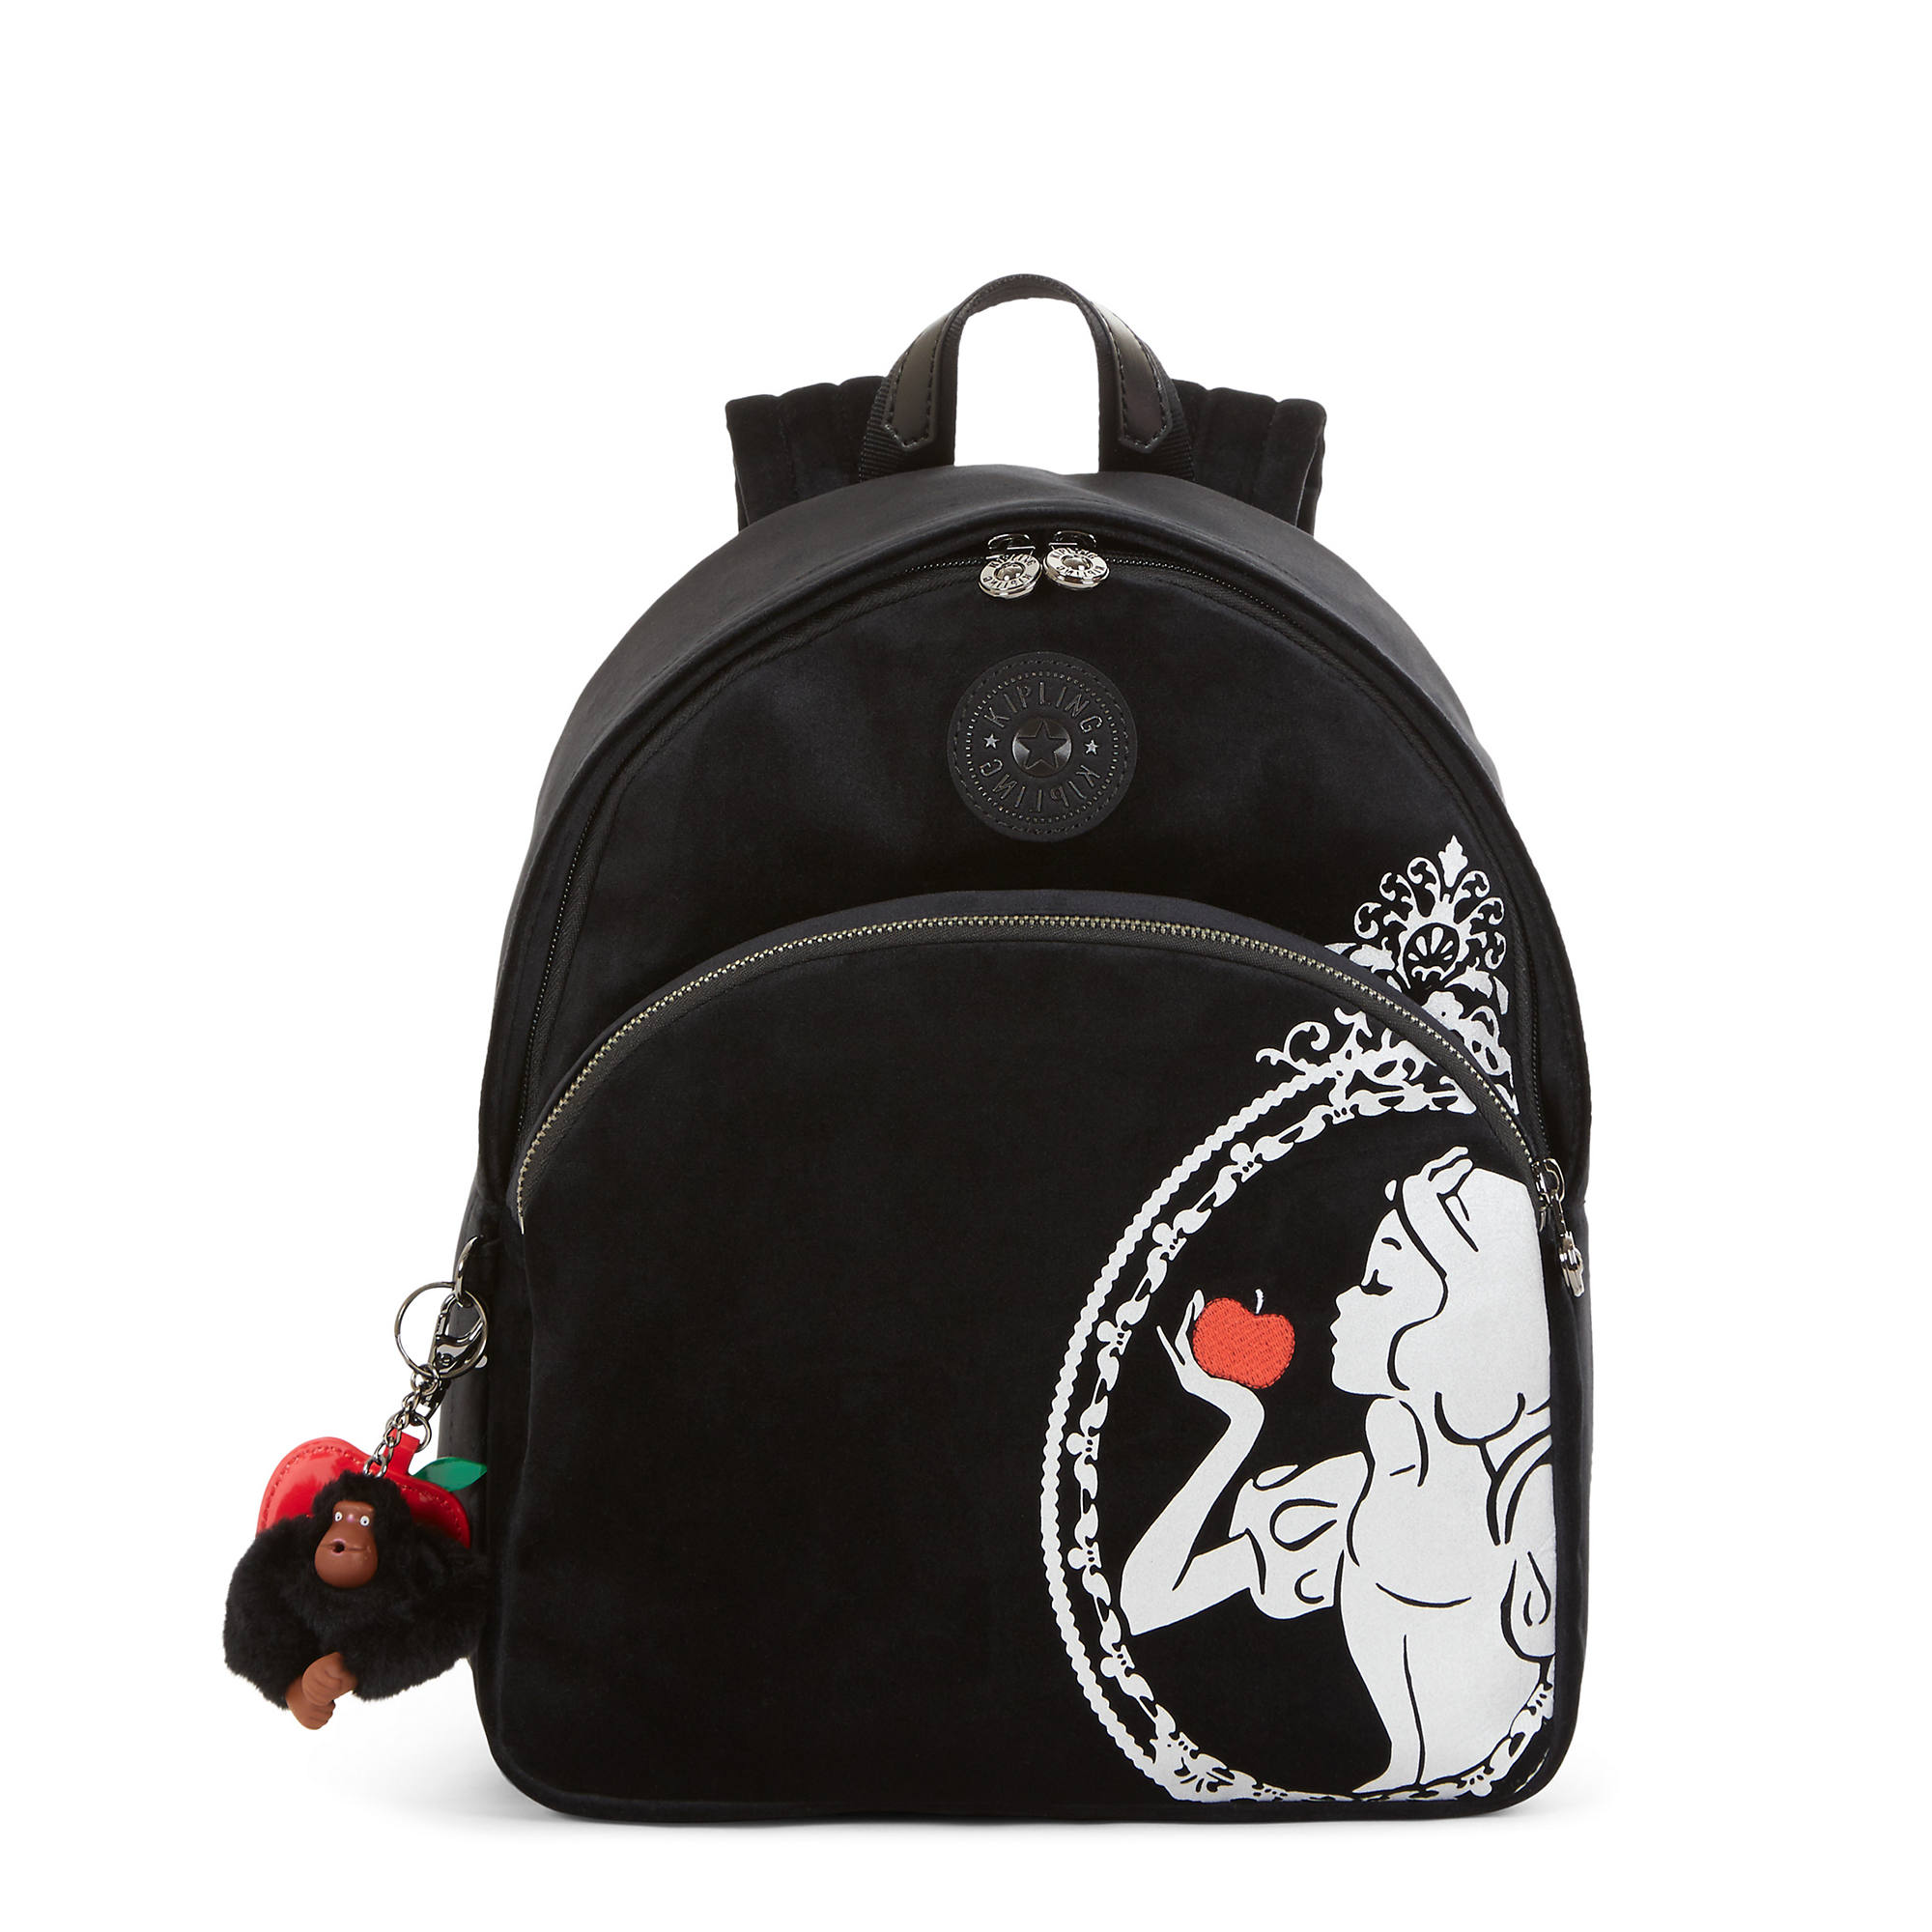 57e11f30e7 Disney's Snow White Paola Velvet Small Backpack